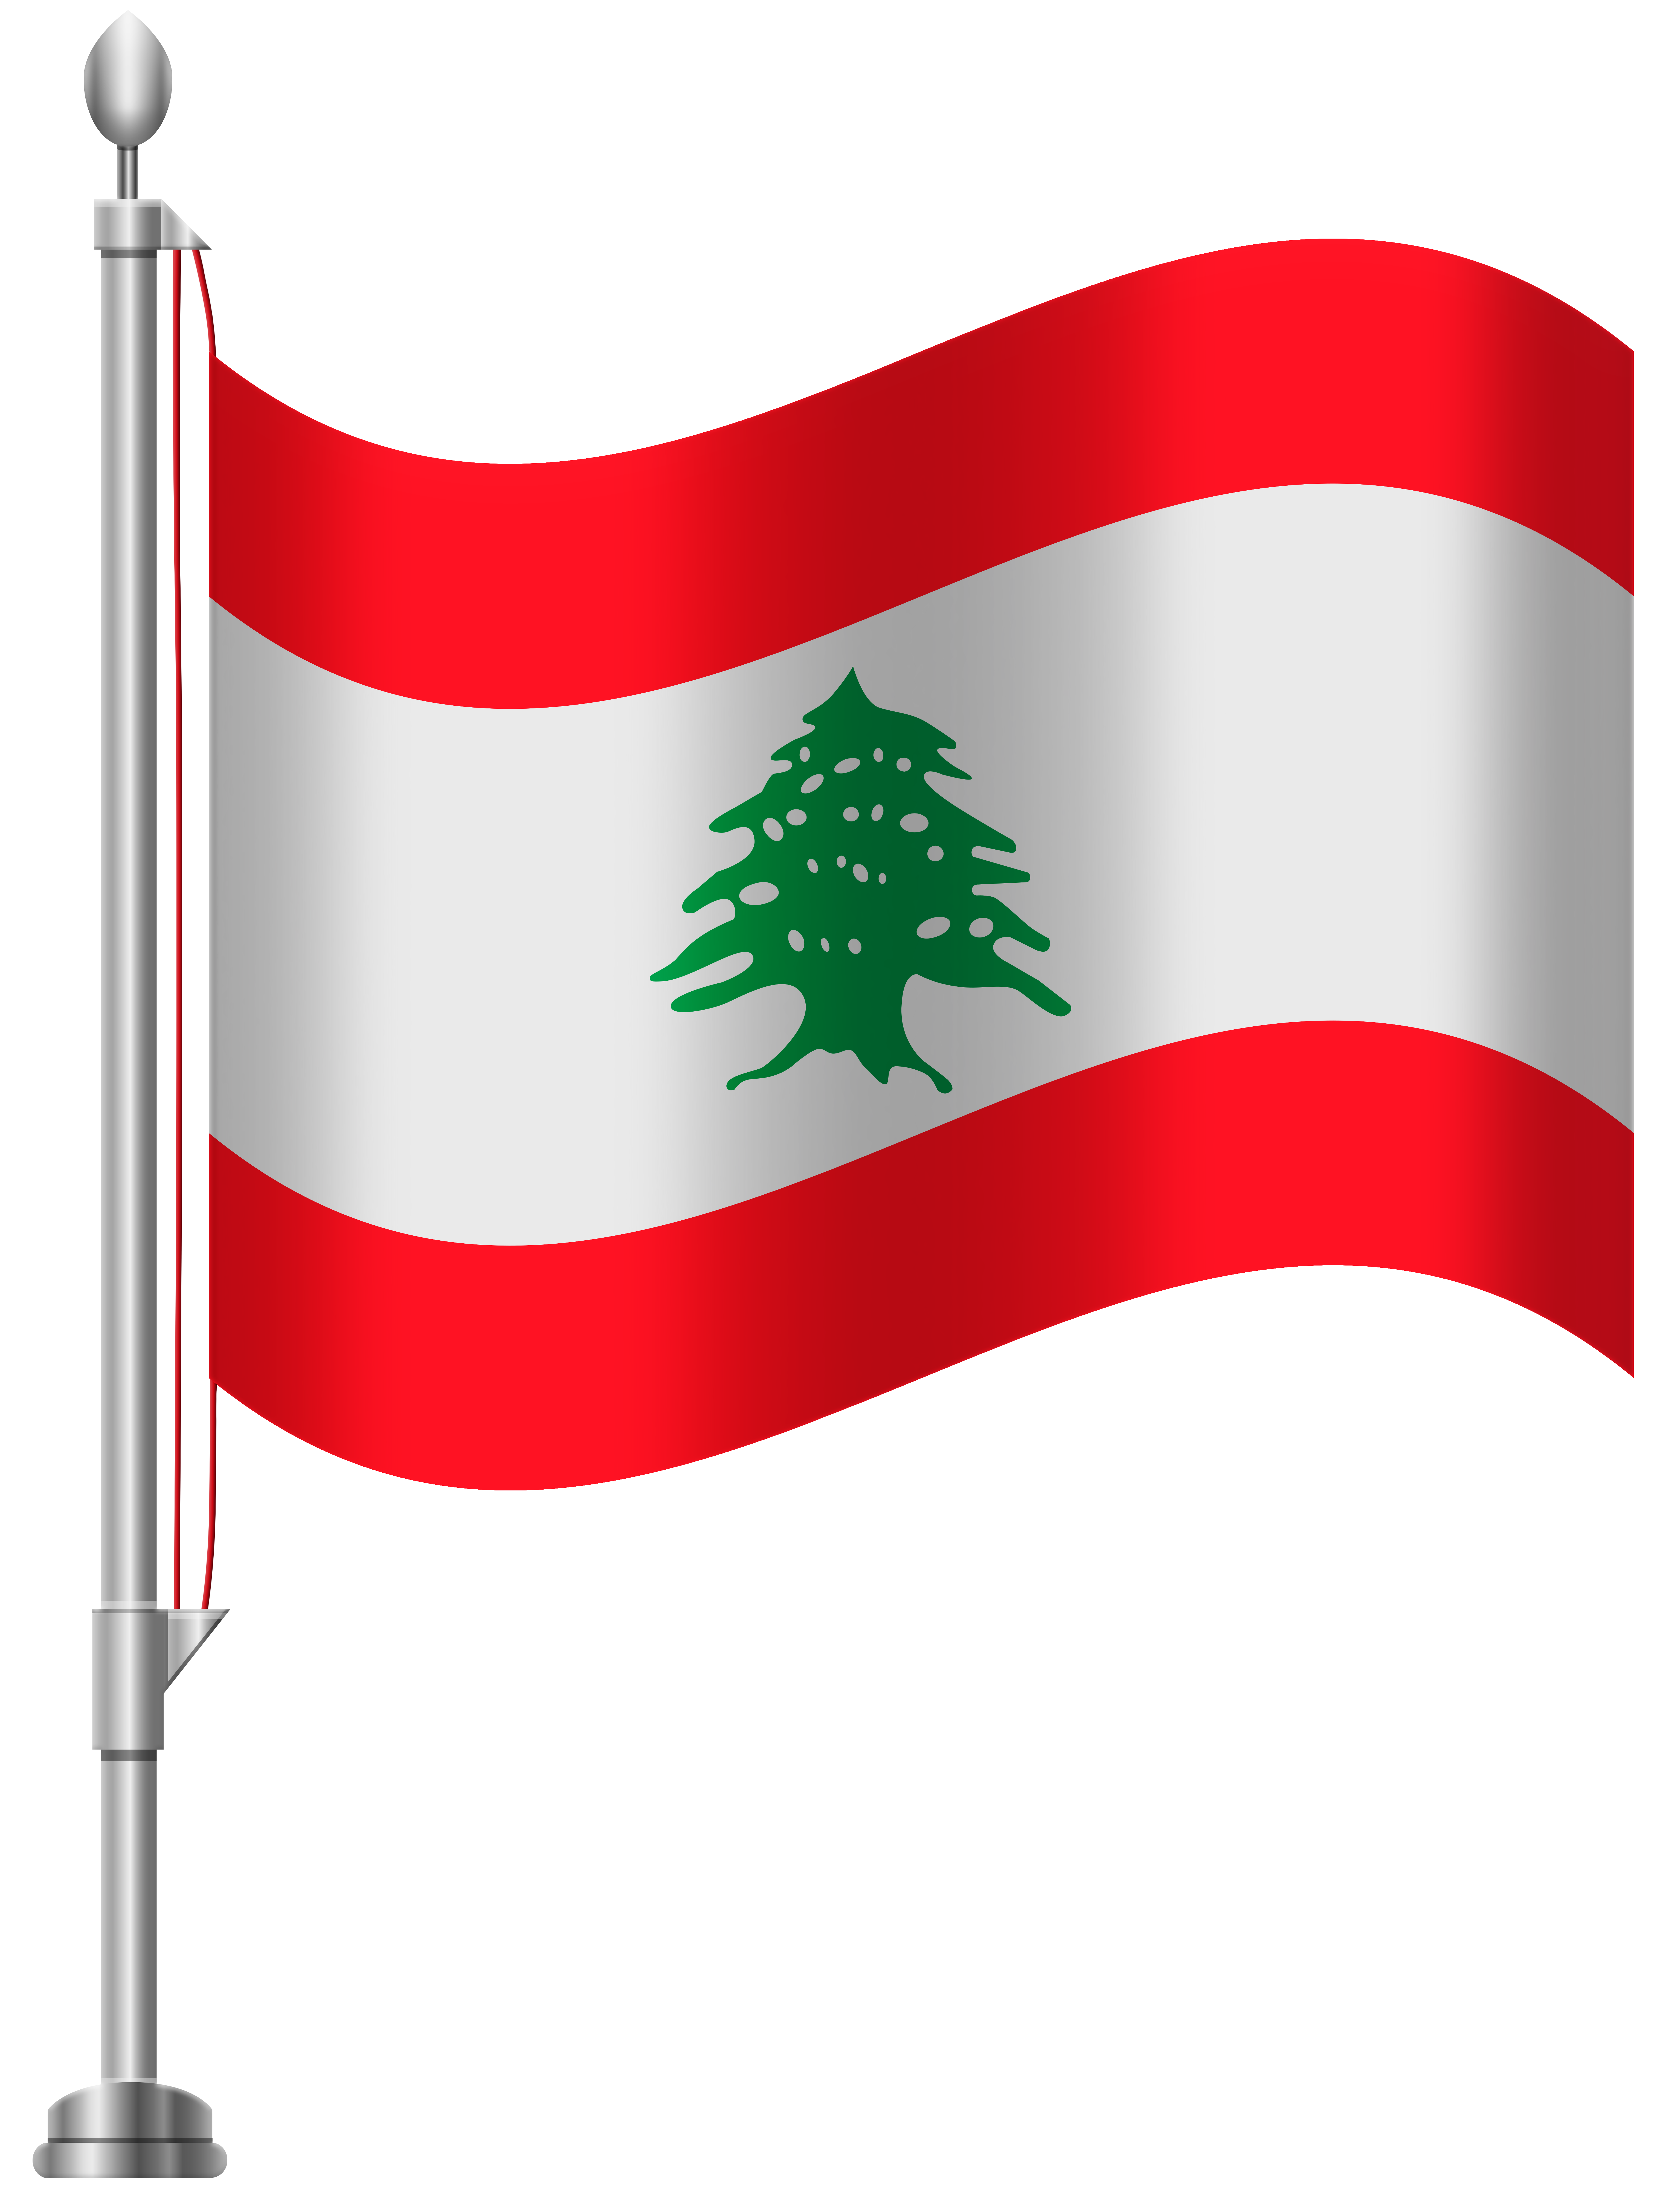 lebanon flag clipart 10 free Cliparts | Download images on ...